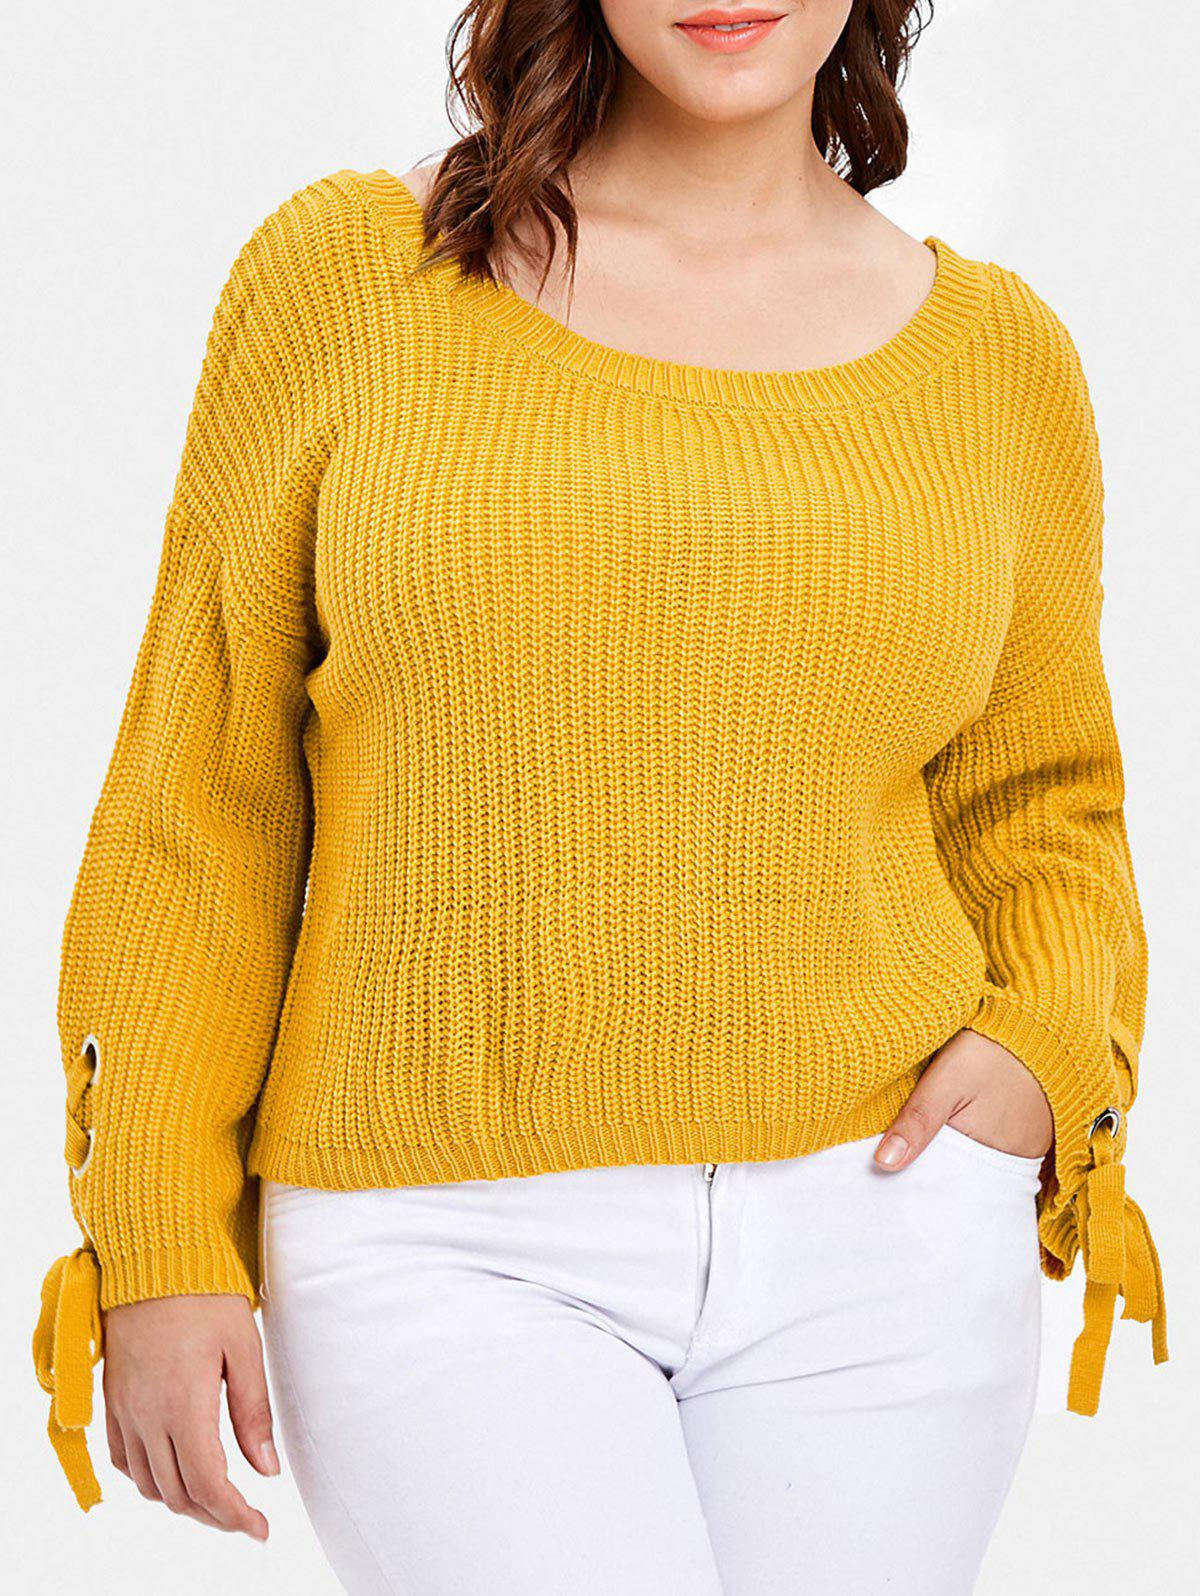 fcf95105af22 66% OFF] Lace Up Sleeve Plus Size Chunky Sweater | Rosegal